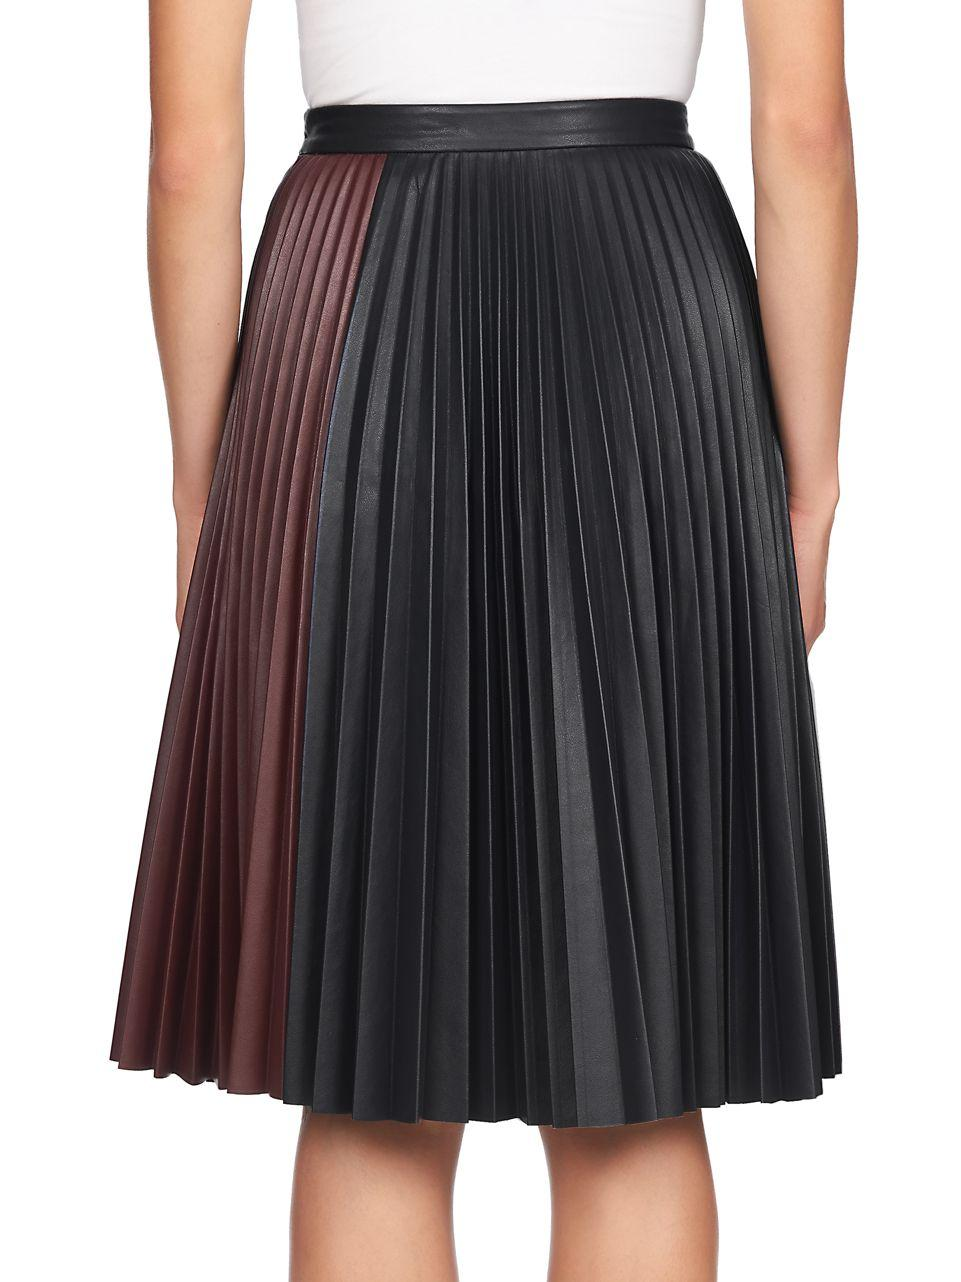 Lyst 1 state faux leather midi skirt in black for Define faux leather